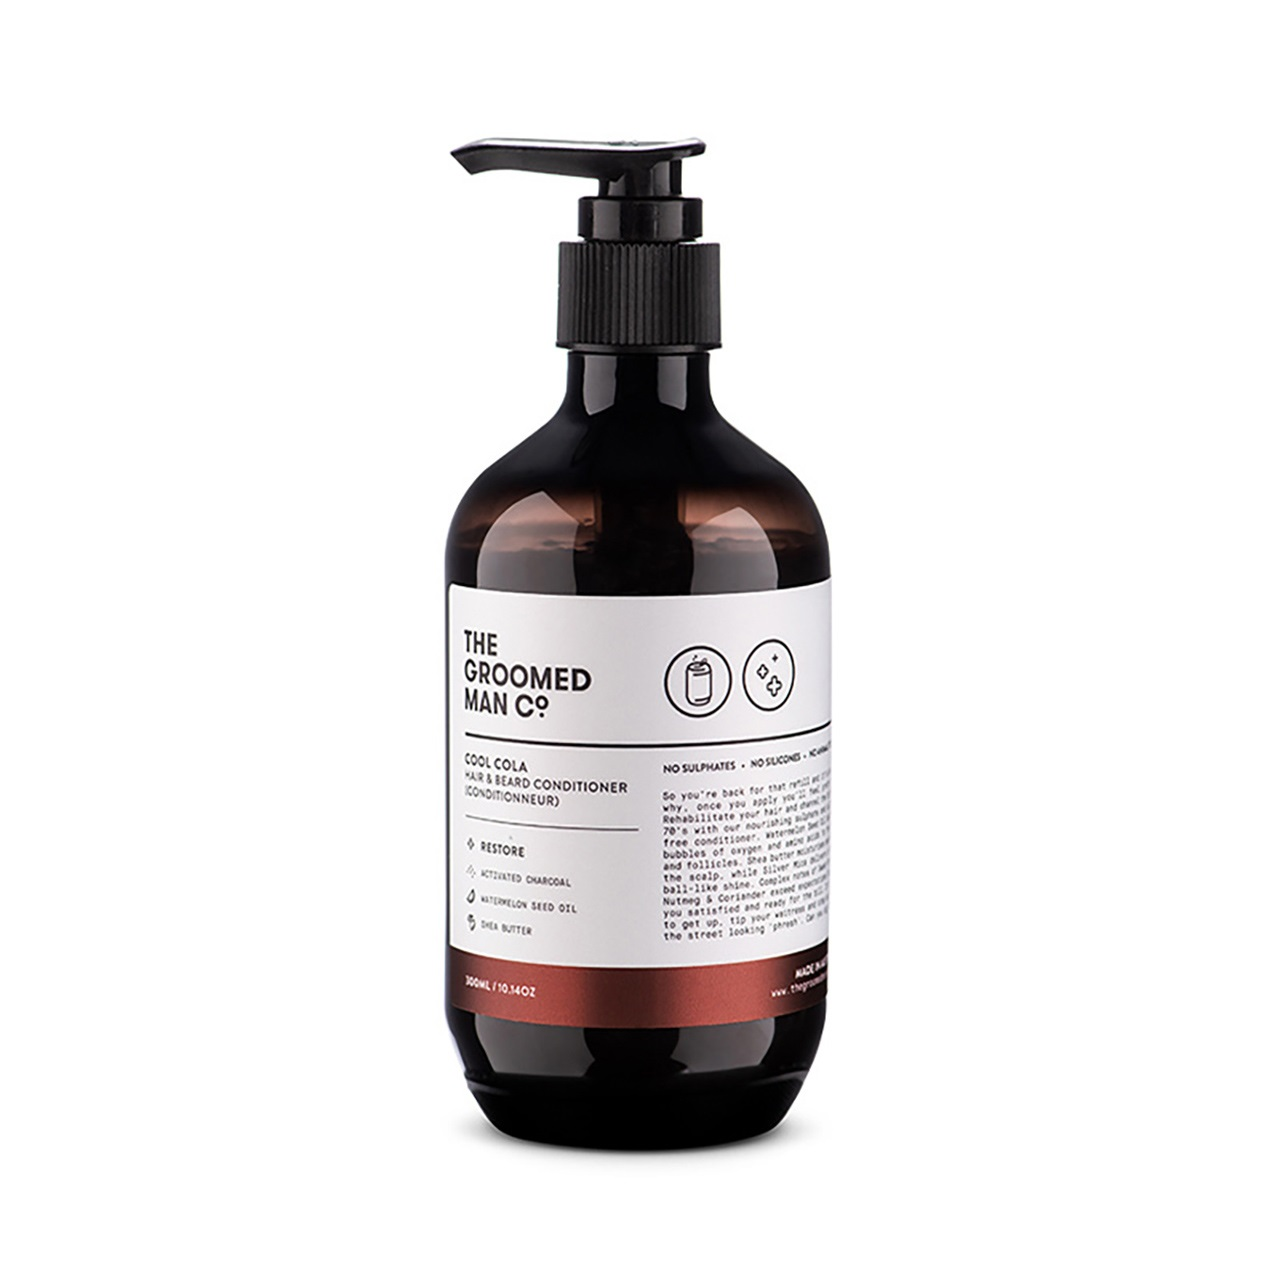 The Groomed Man Co. Cool Cola Hair & Beard Conditioner